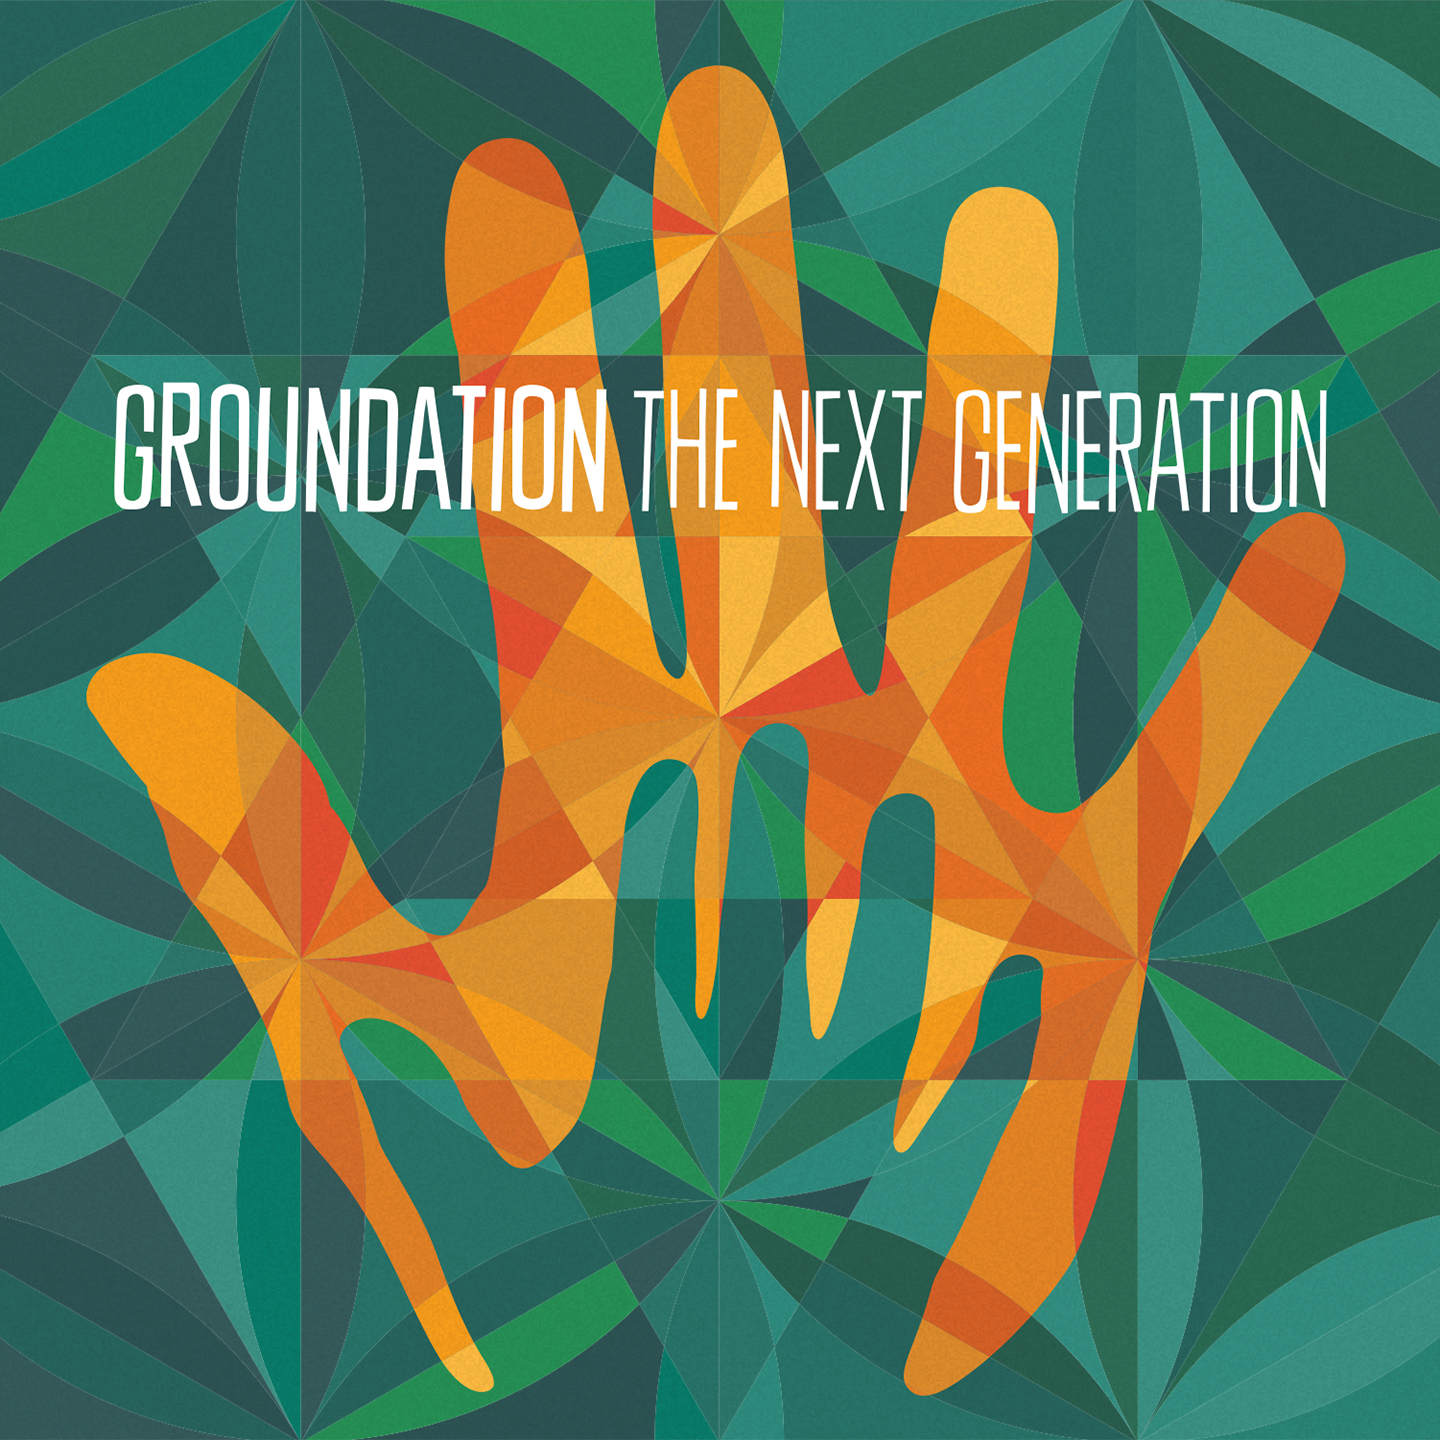 https://bacoshop.fr/wp-content/uploads/2018/06/Groundation-The-Next-Generation-1440.jpg